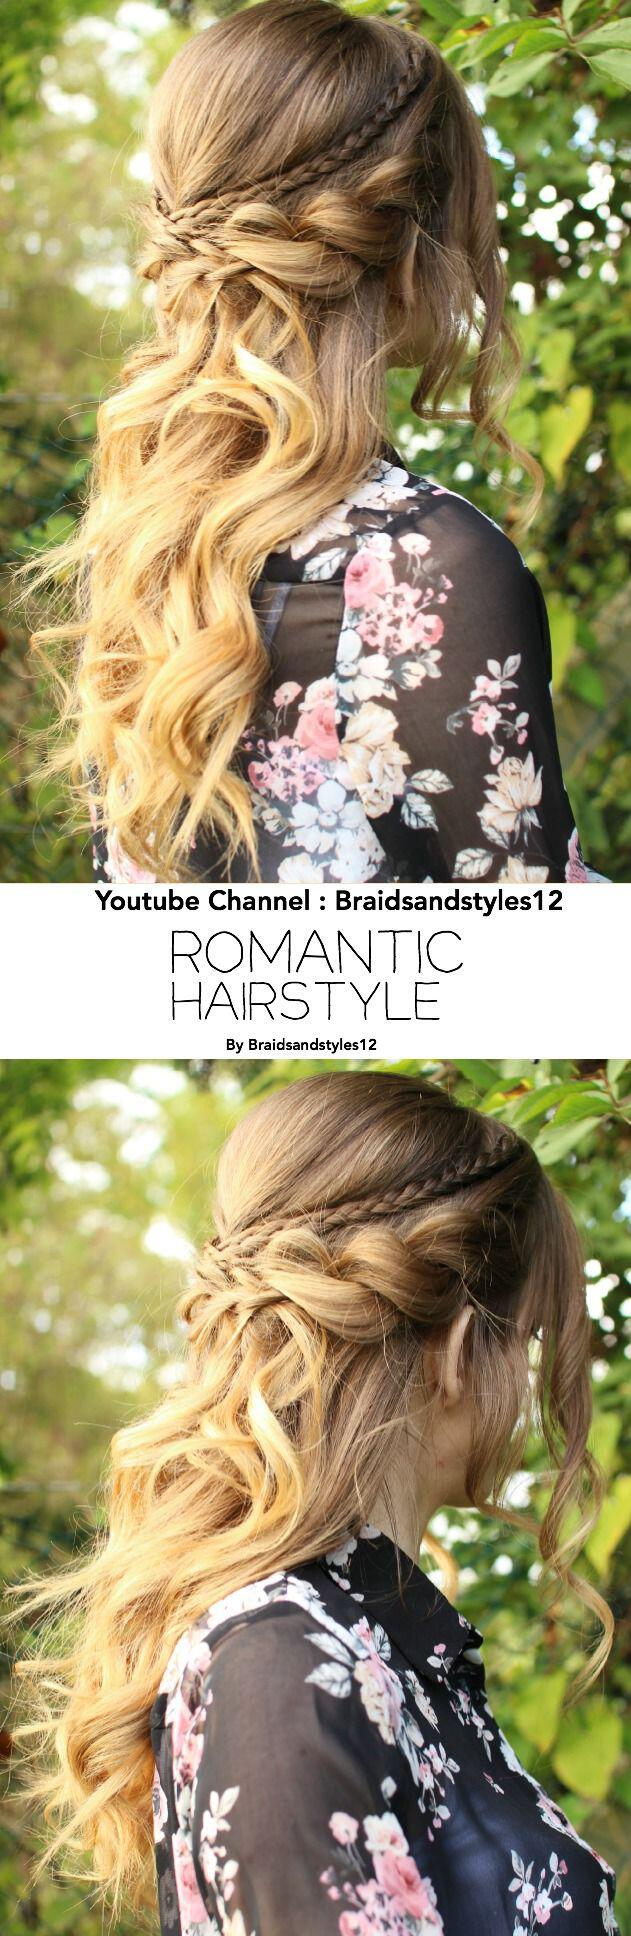 5-romantic-hairstyles-date-evening